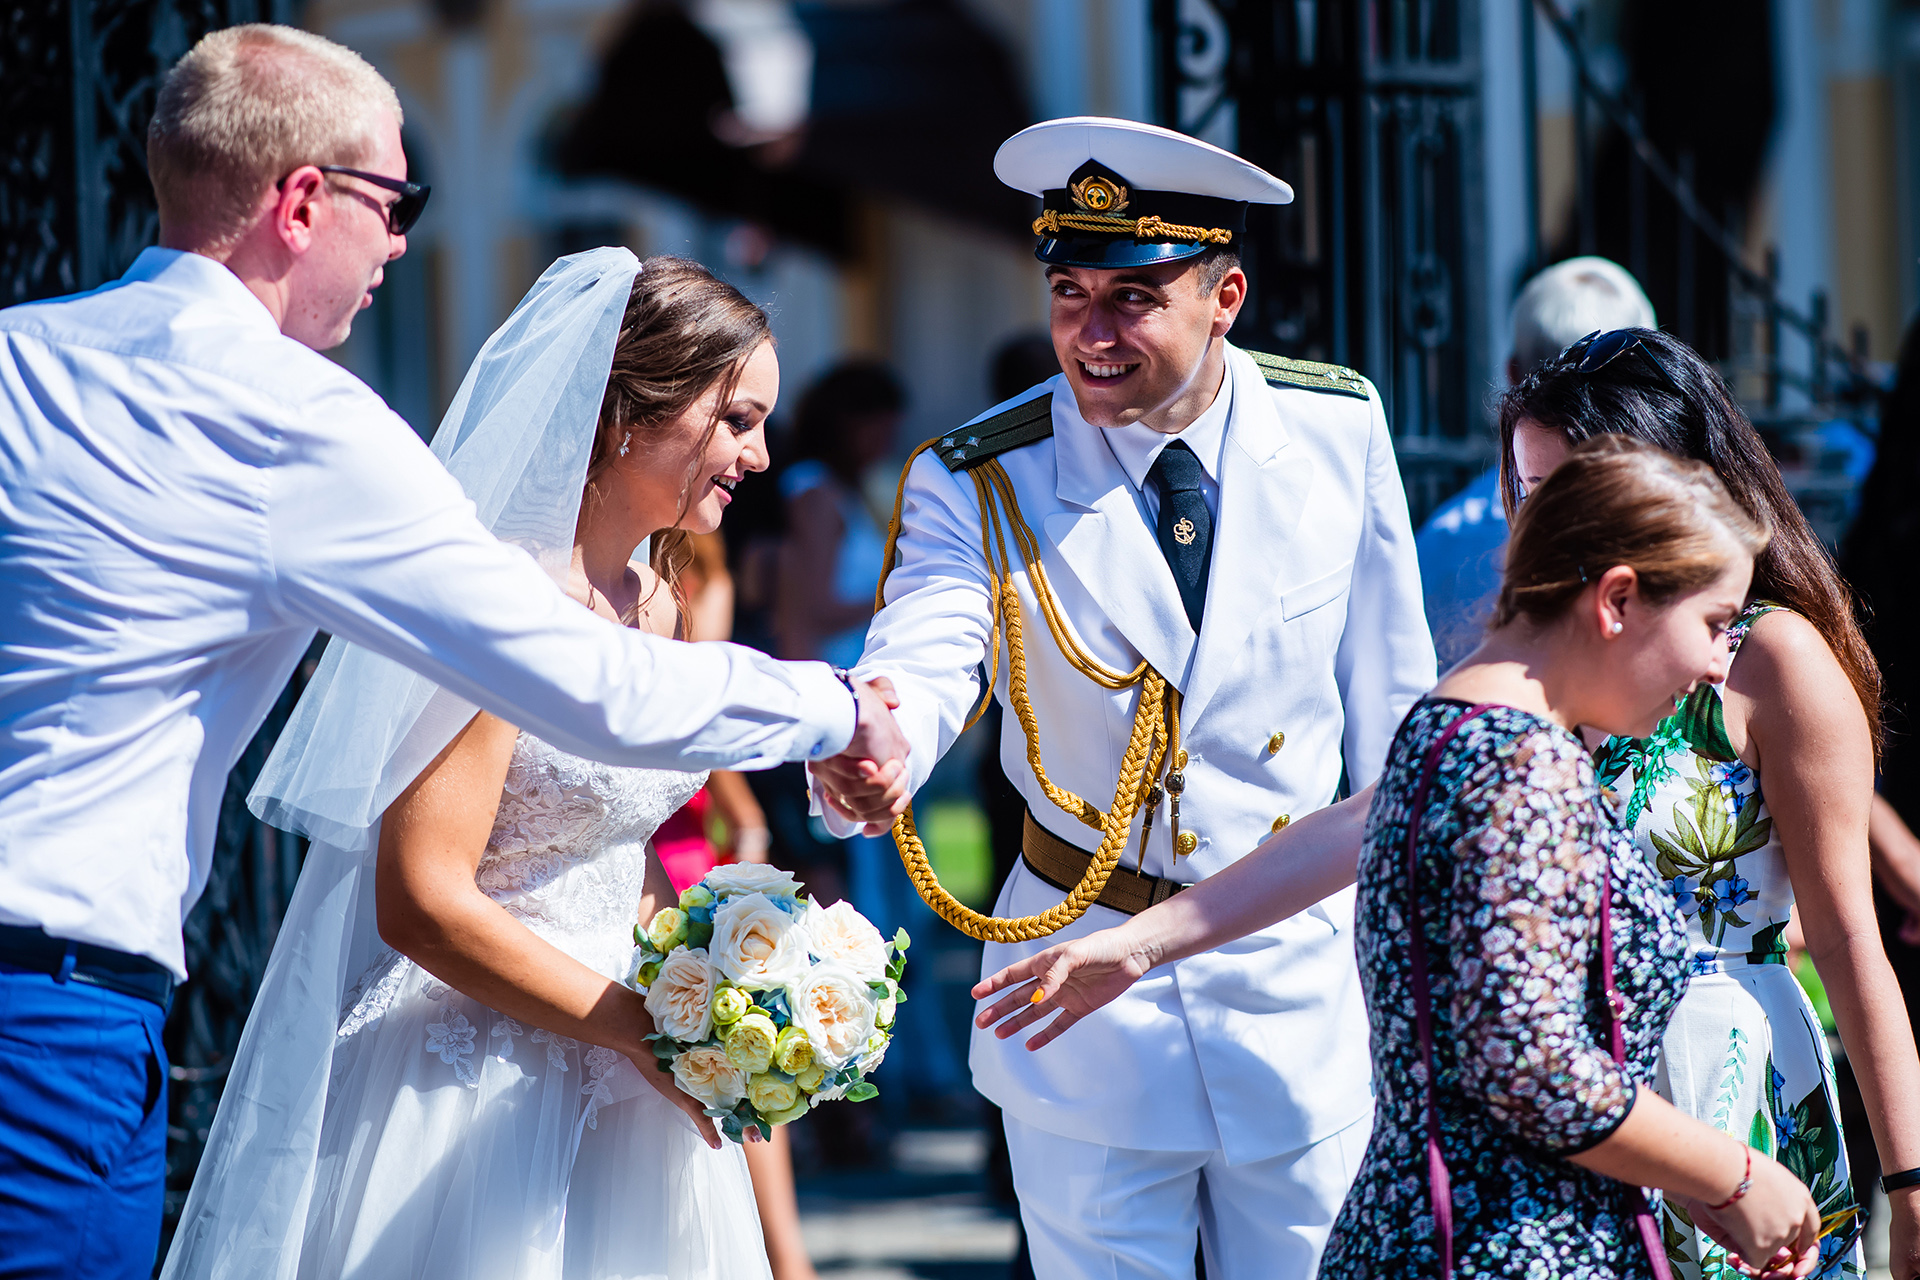 Ruse City Center Wedding Photos | On a sunshine-filled day, the wedding guests congratulate the happy couple